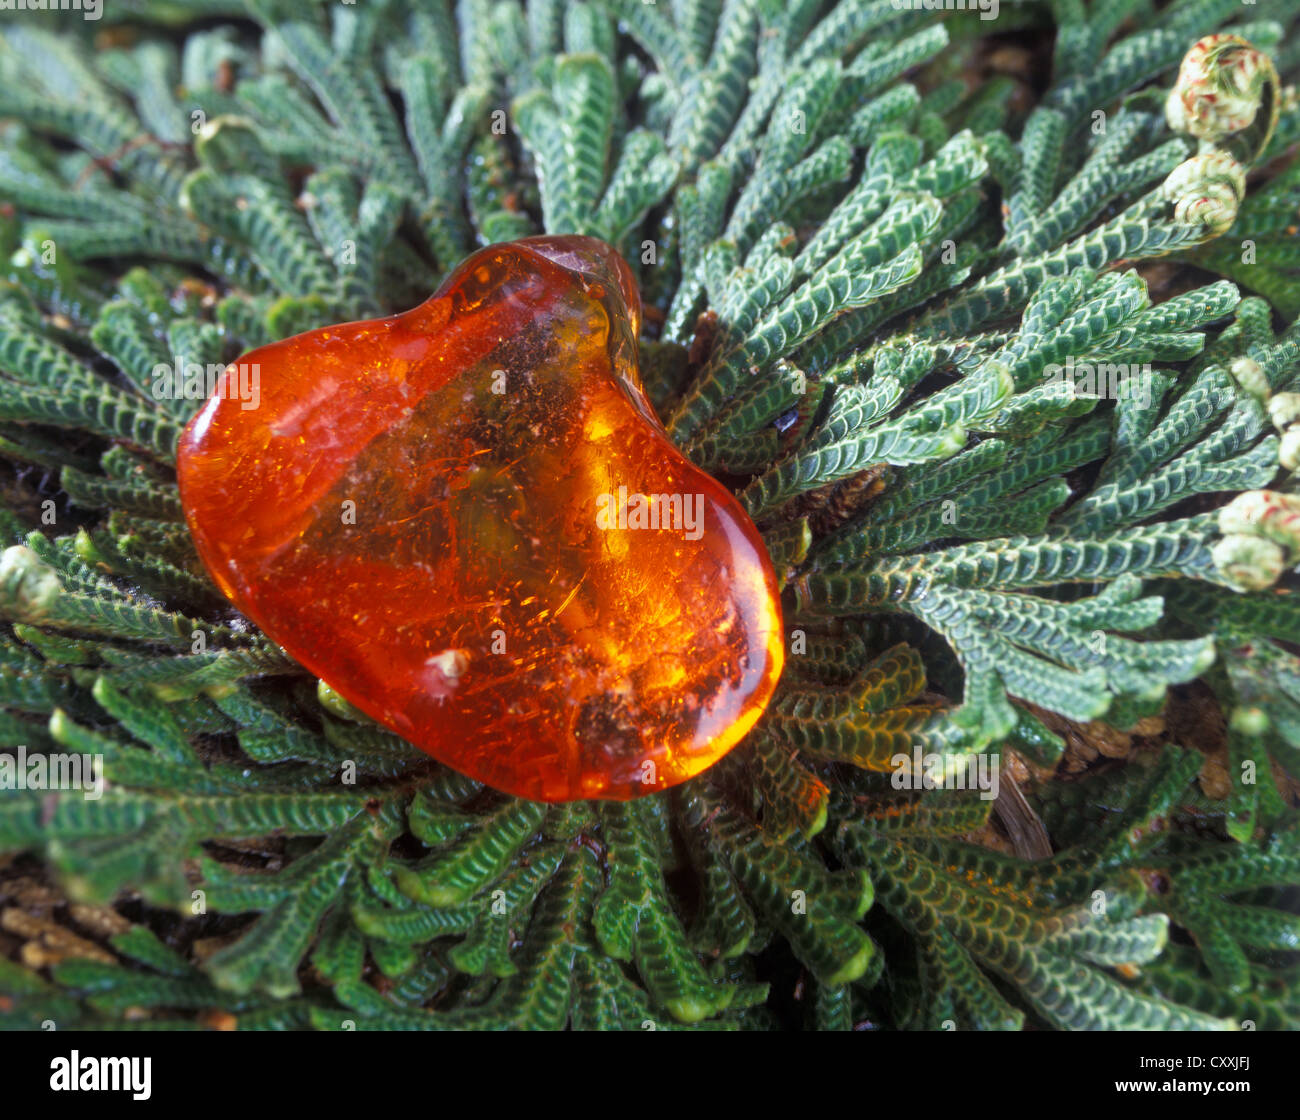 Amber lying on leaves of a rose of Jericho - Stock Image